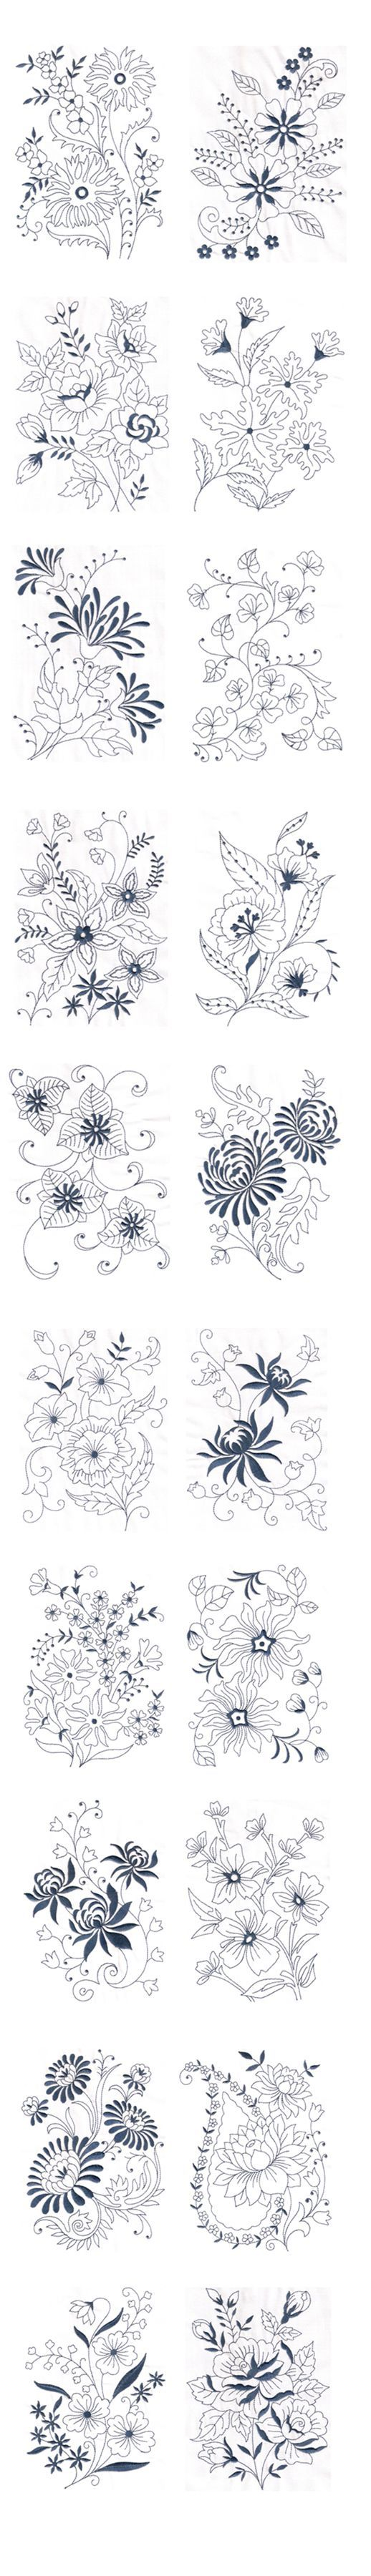 Amazing Emotions - Vintage Florals 01    Machine Embroidery Designs --- Vintage Florals 01 These fabulous vintage floral designs can add supreme beauty to your products like bed linen, bath linen, kitchen linen, curtains and even dresses. You can notice the variety in the floral designs    For more details visit www.embroideryemotions.com